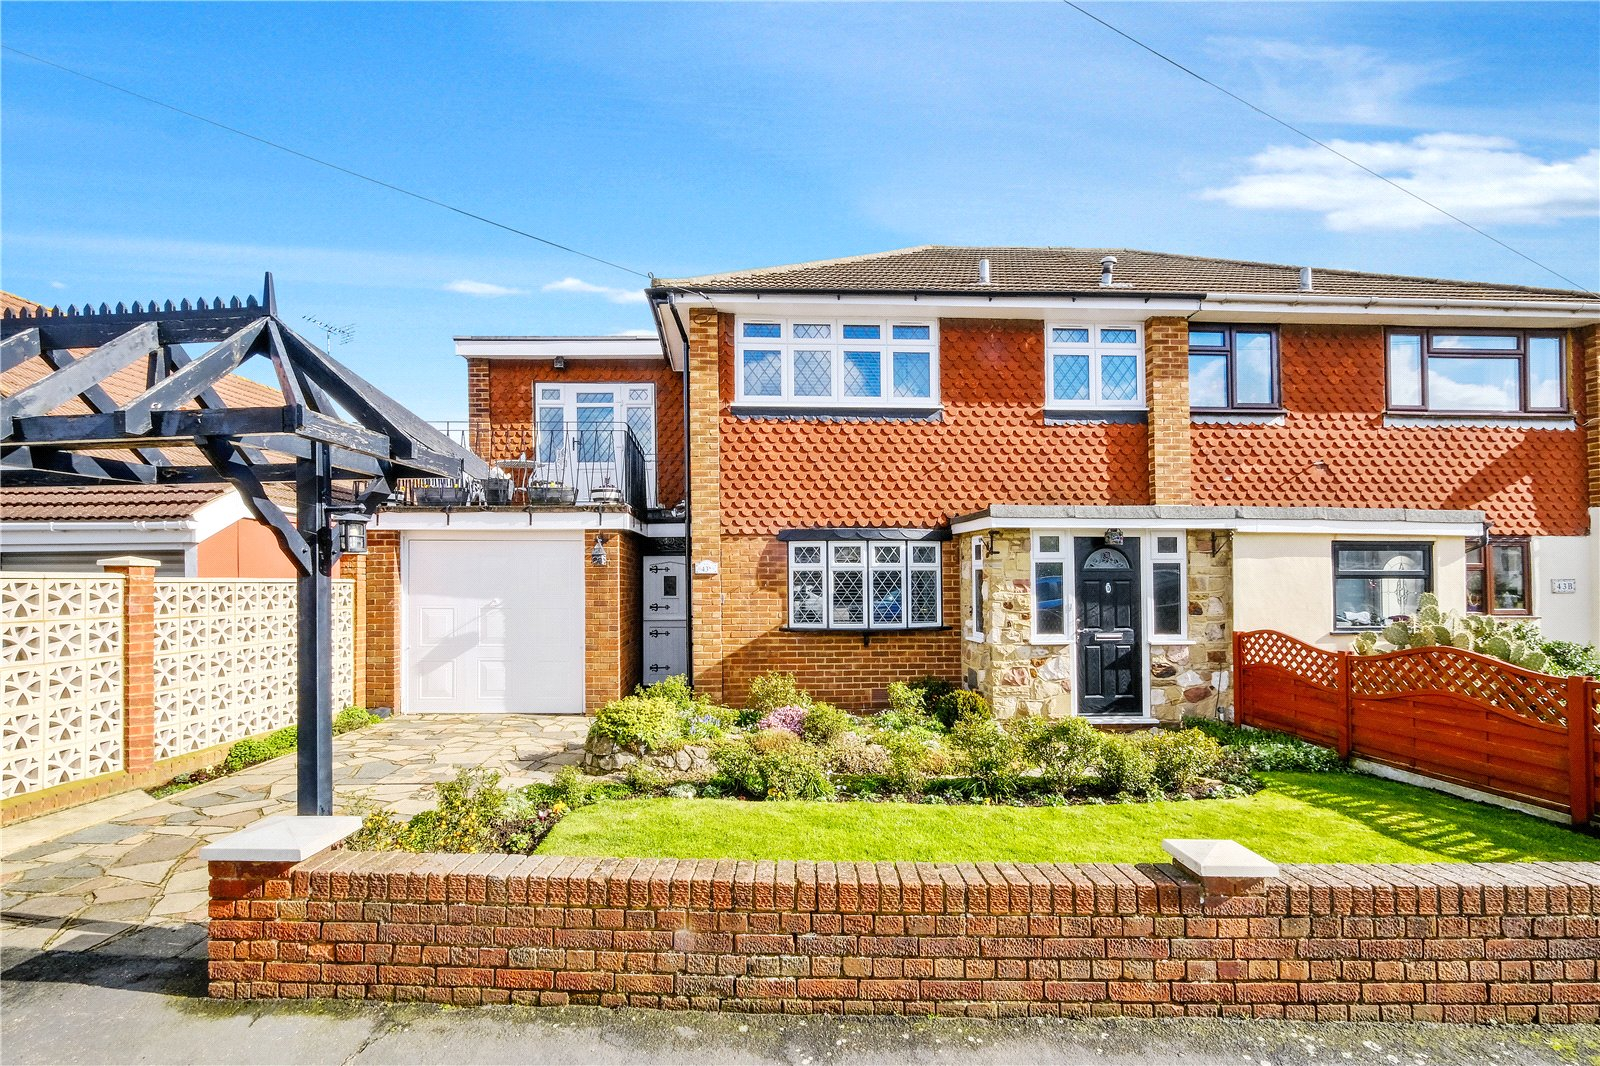 Hedge Place Road, Greenhithe, Kent, DA9